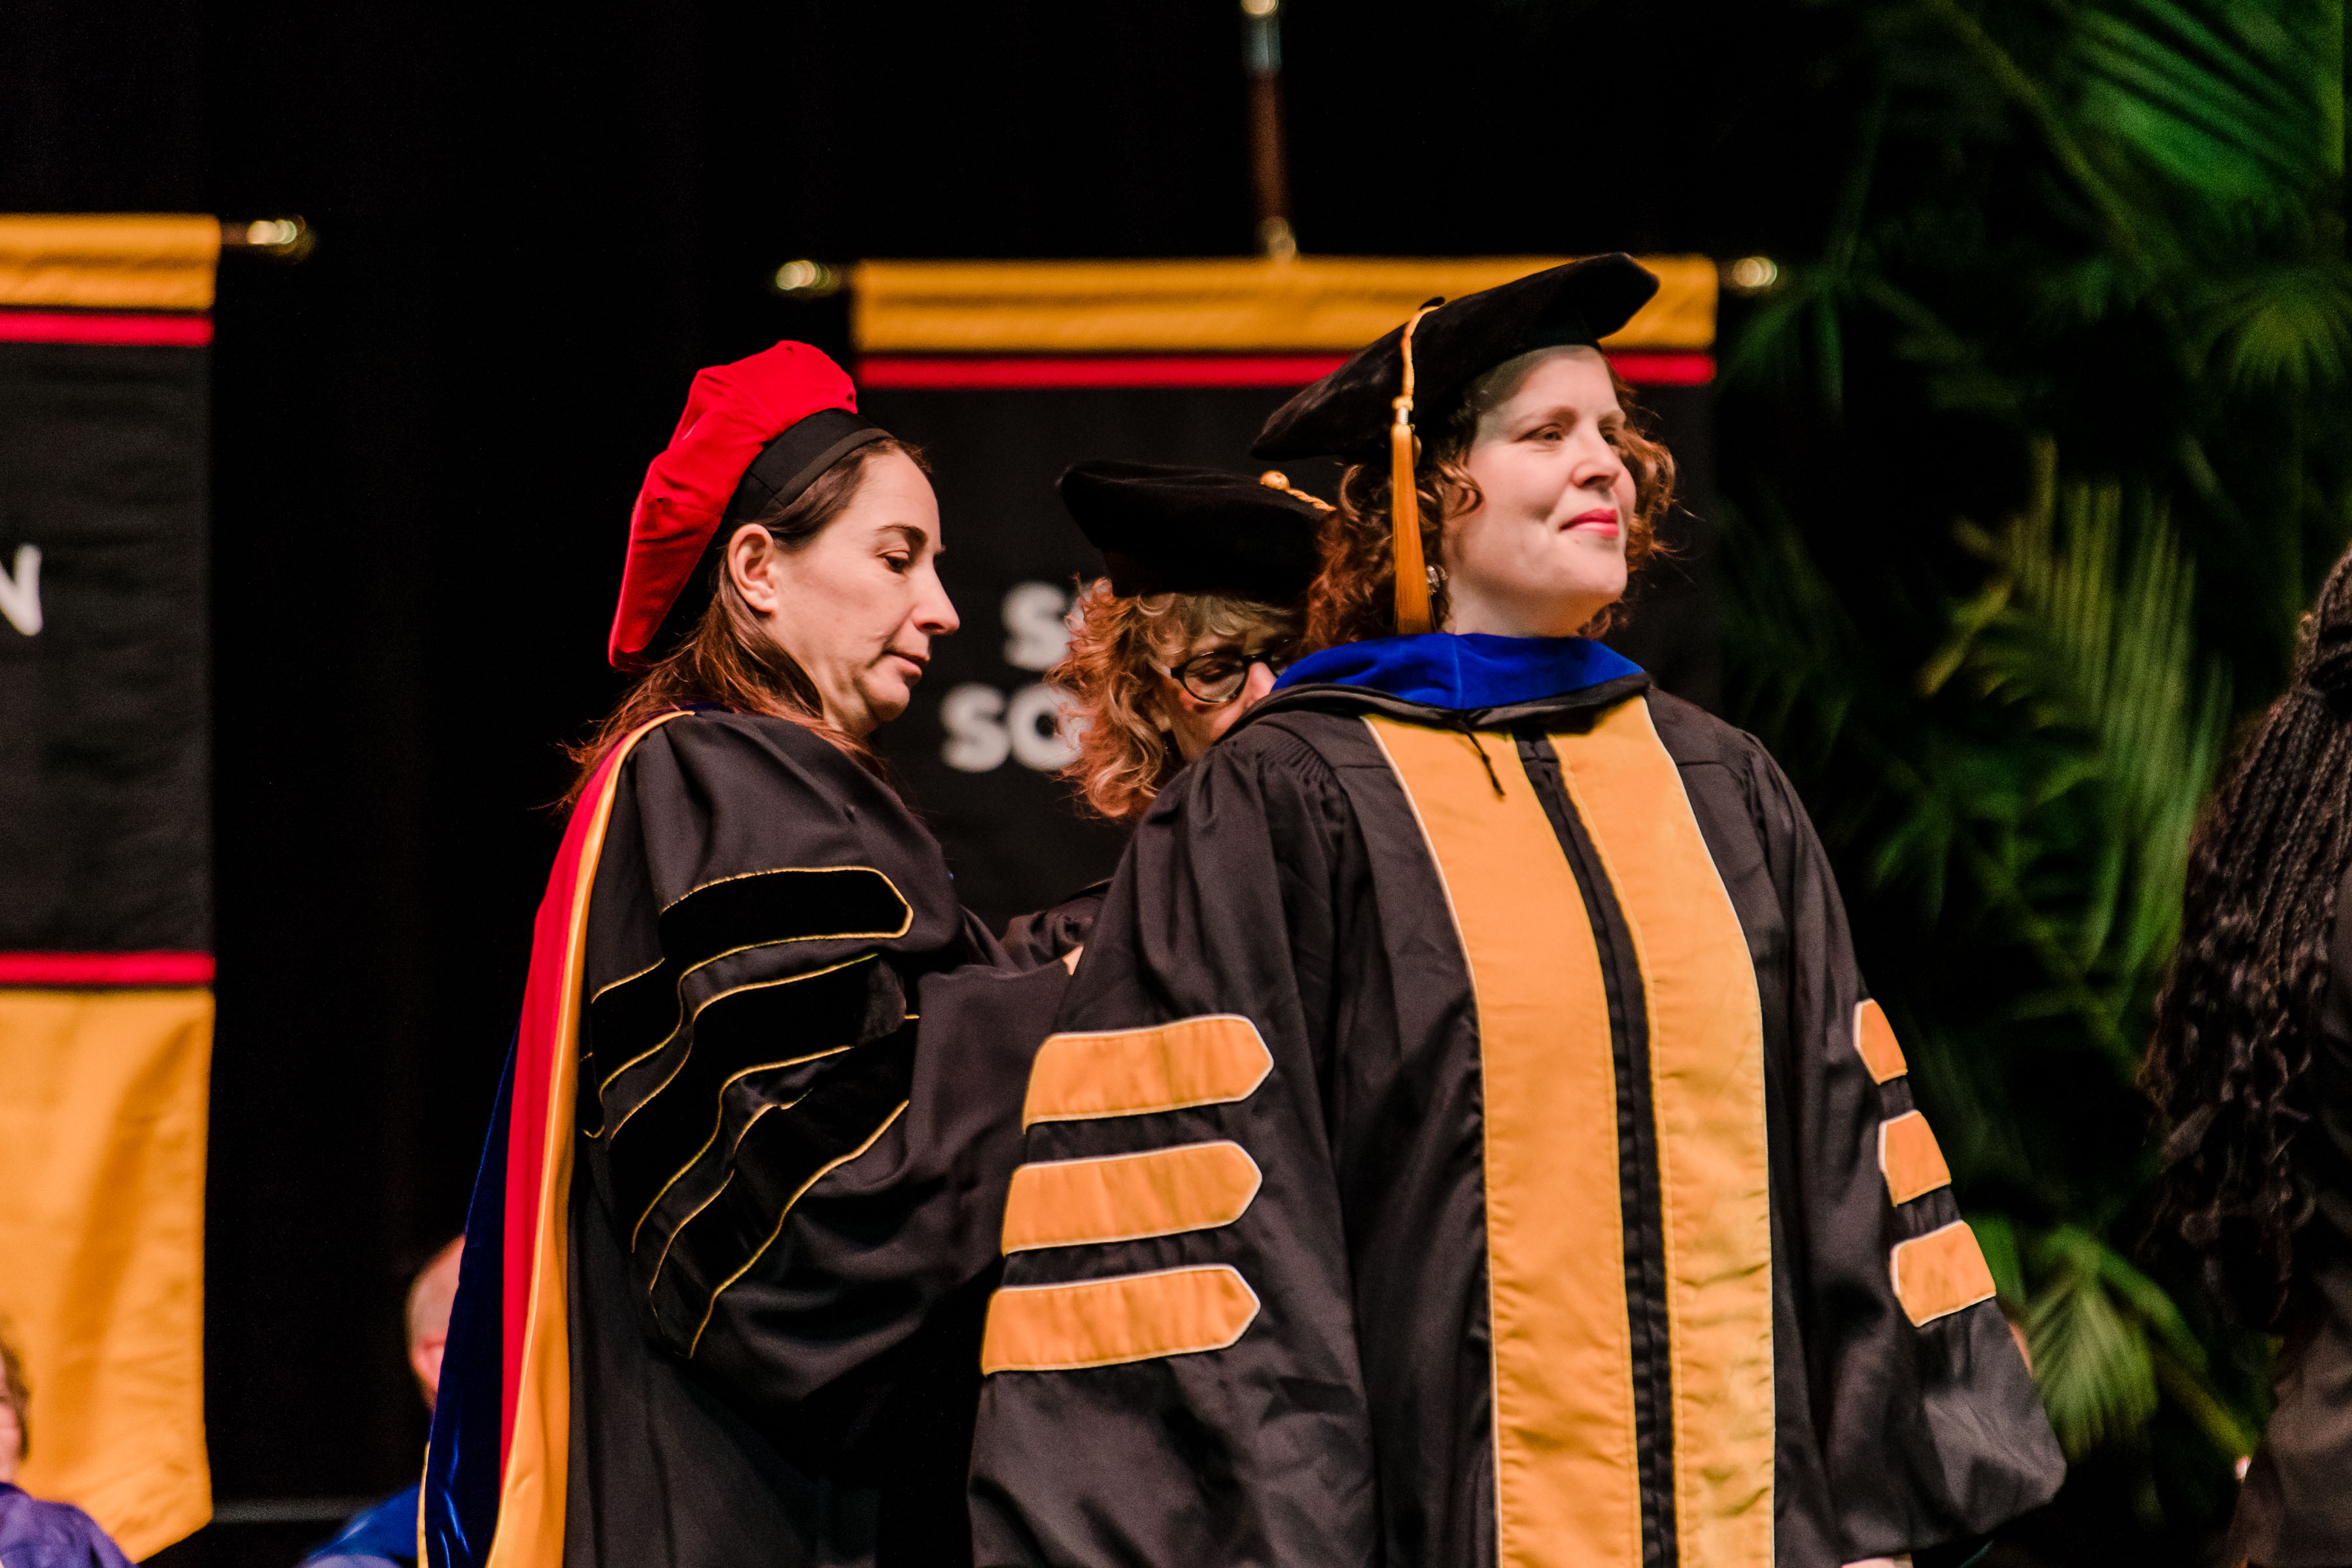 professors in graduation regalia help each other with outfit